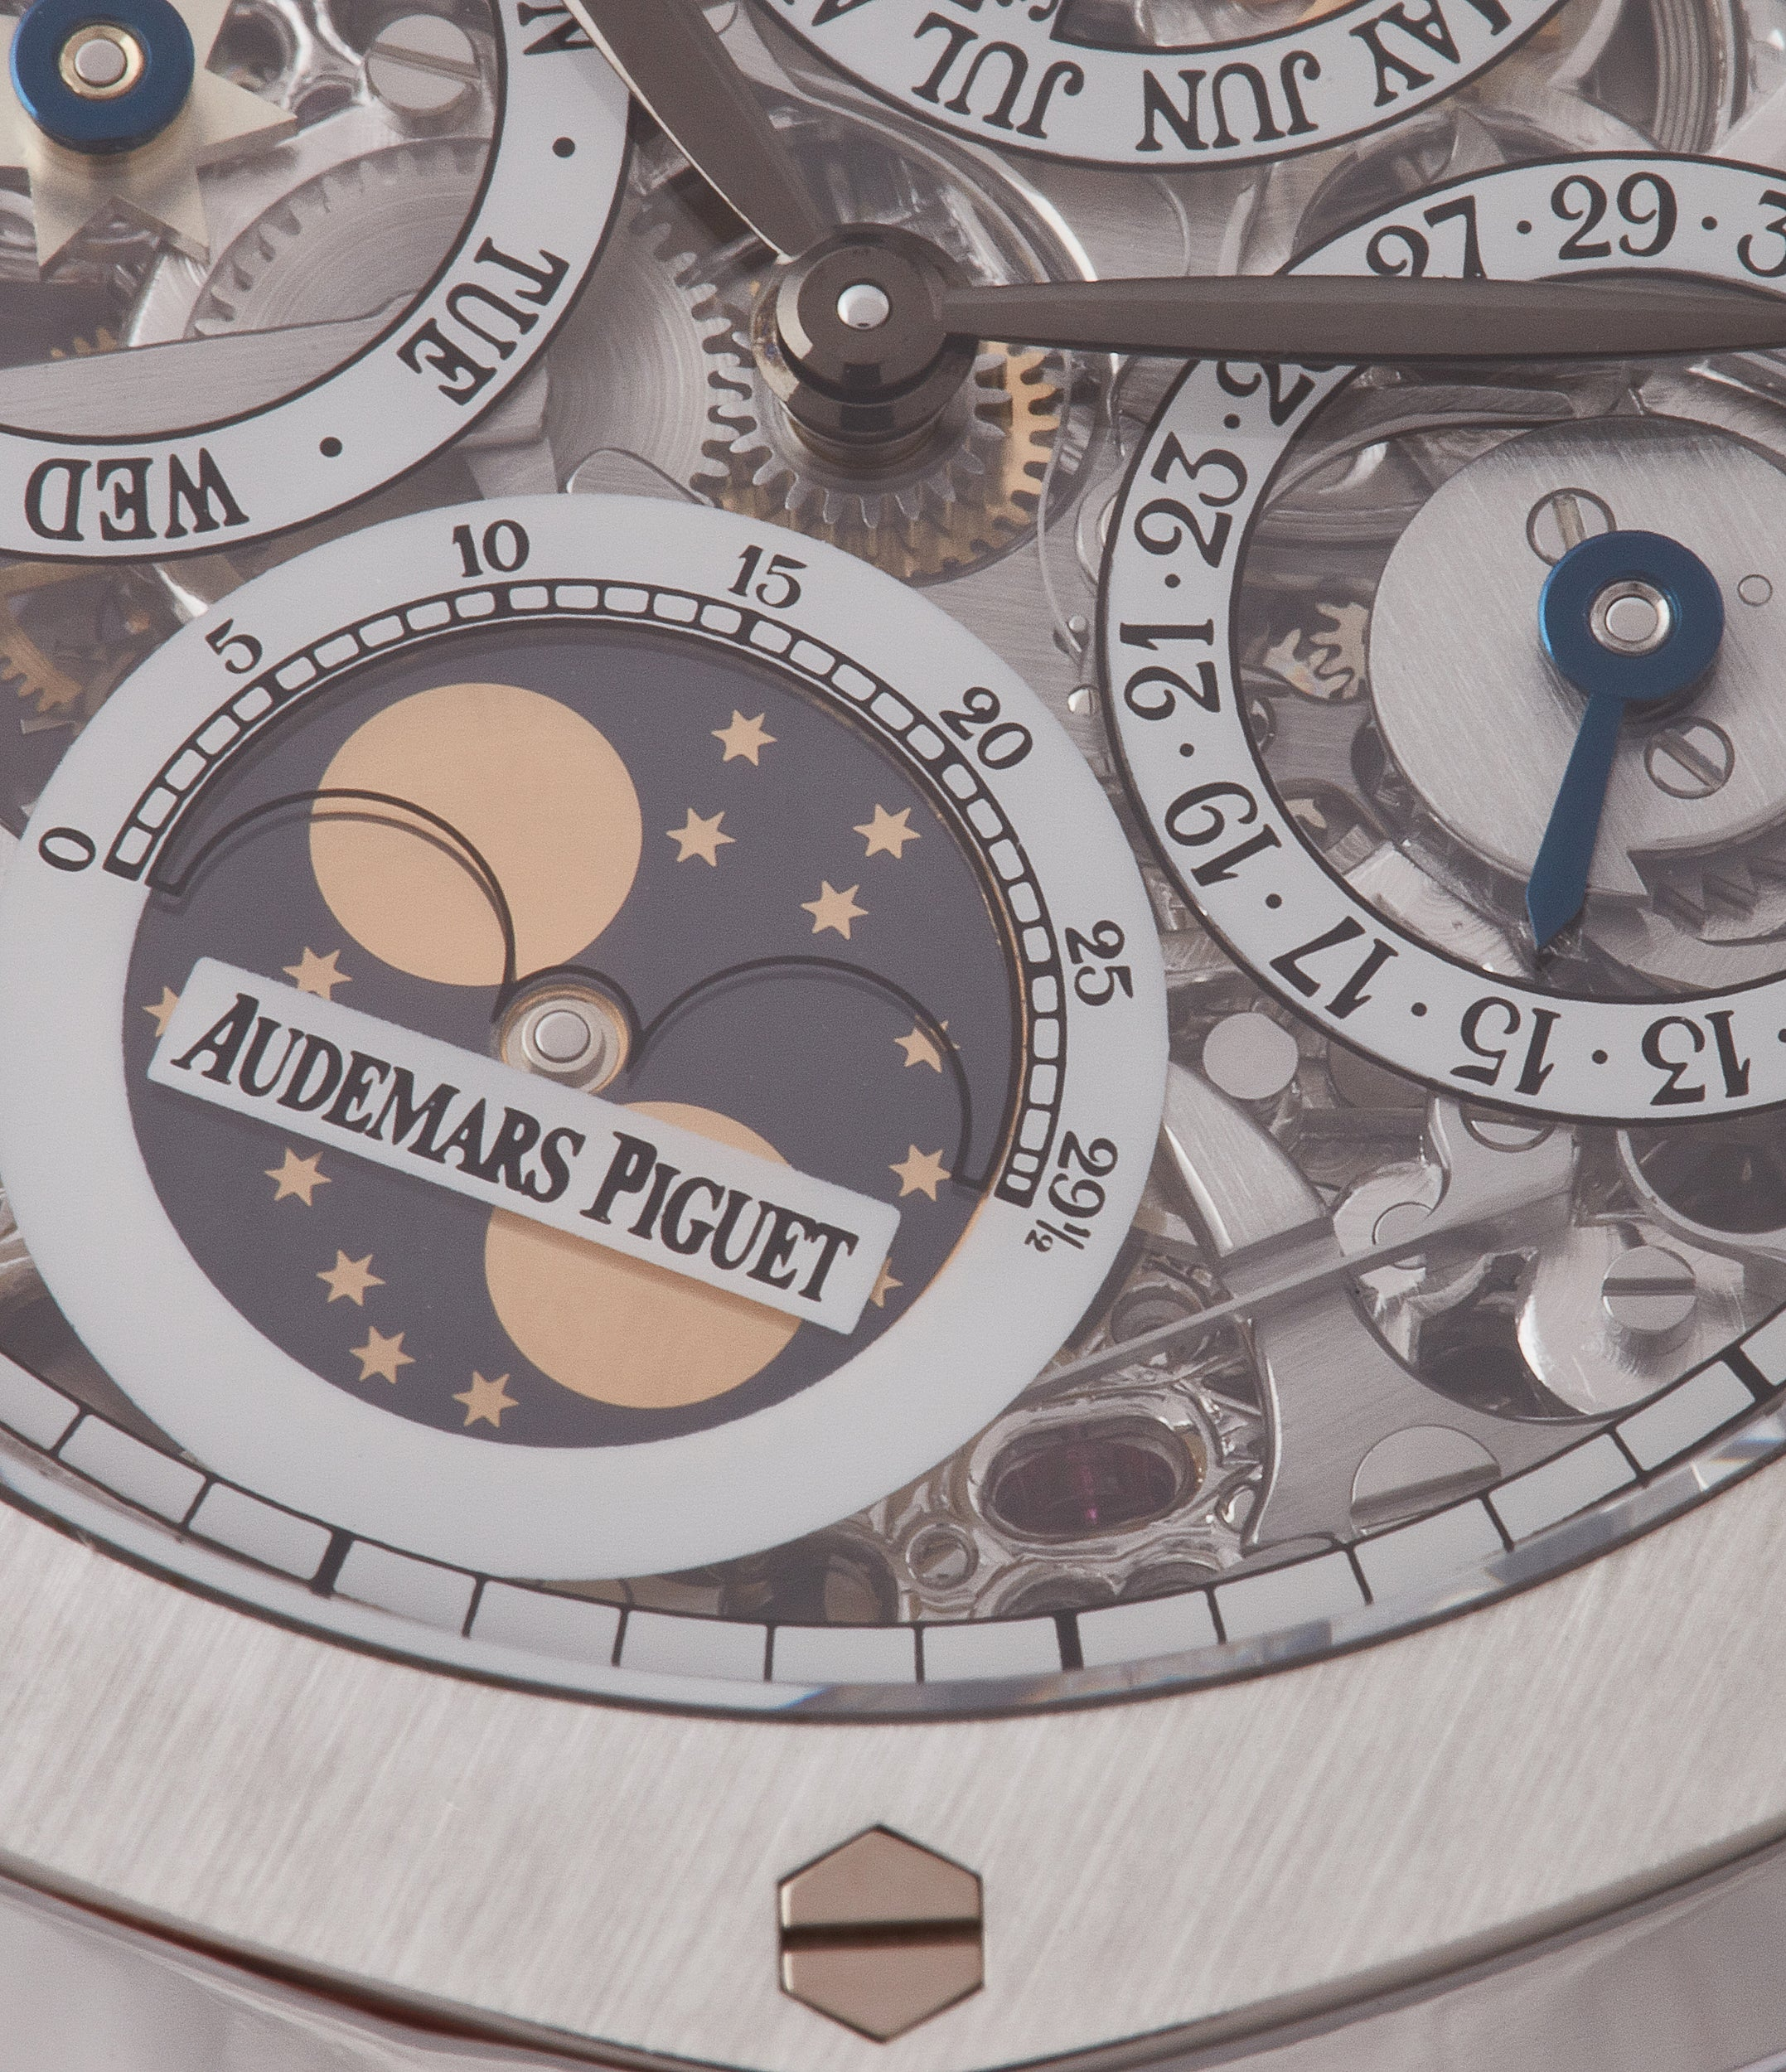 astronomical moon phase Audemars Piguet Royal Oak 25829PT perpetual calendar skeleton dial platinum full set pre-owned watch for sale online at A Collected Man London UK specialist of rare watches